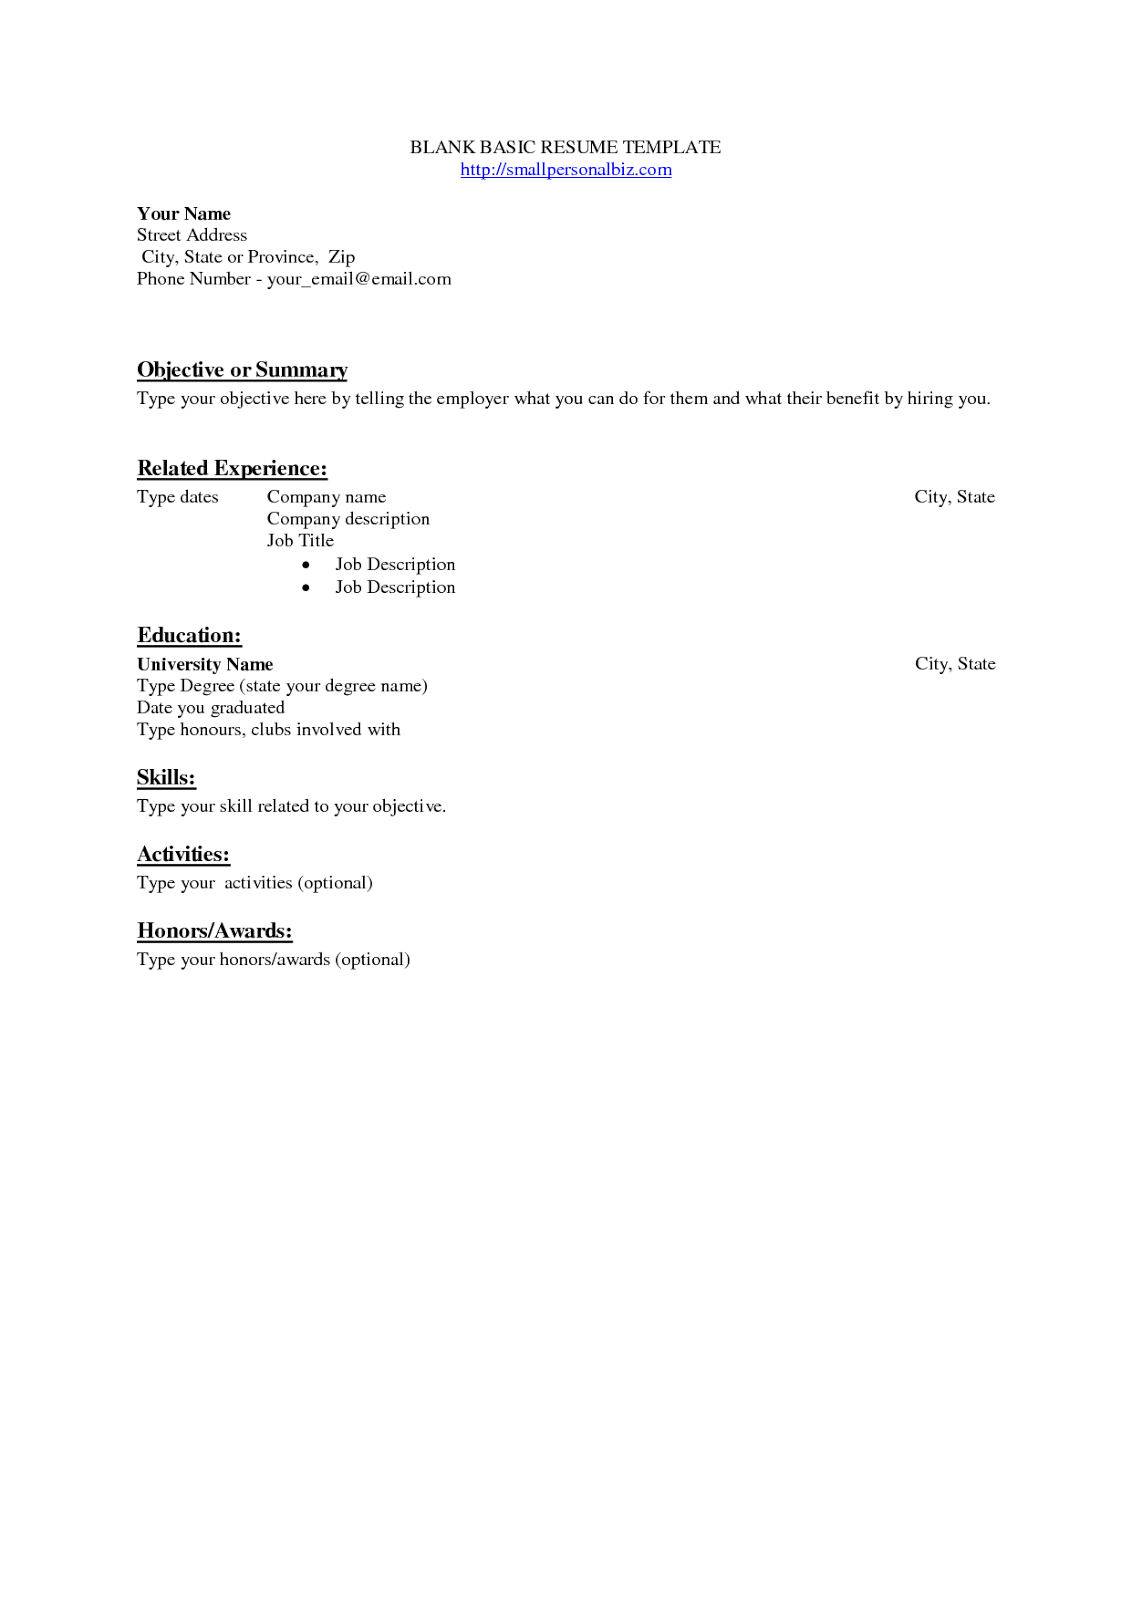 simple resume for jobs examples examples of resumes best resume for your job search livecareer job resume no experience examples